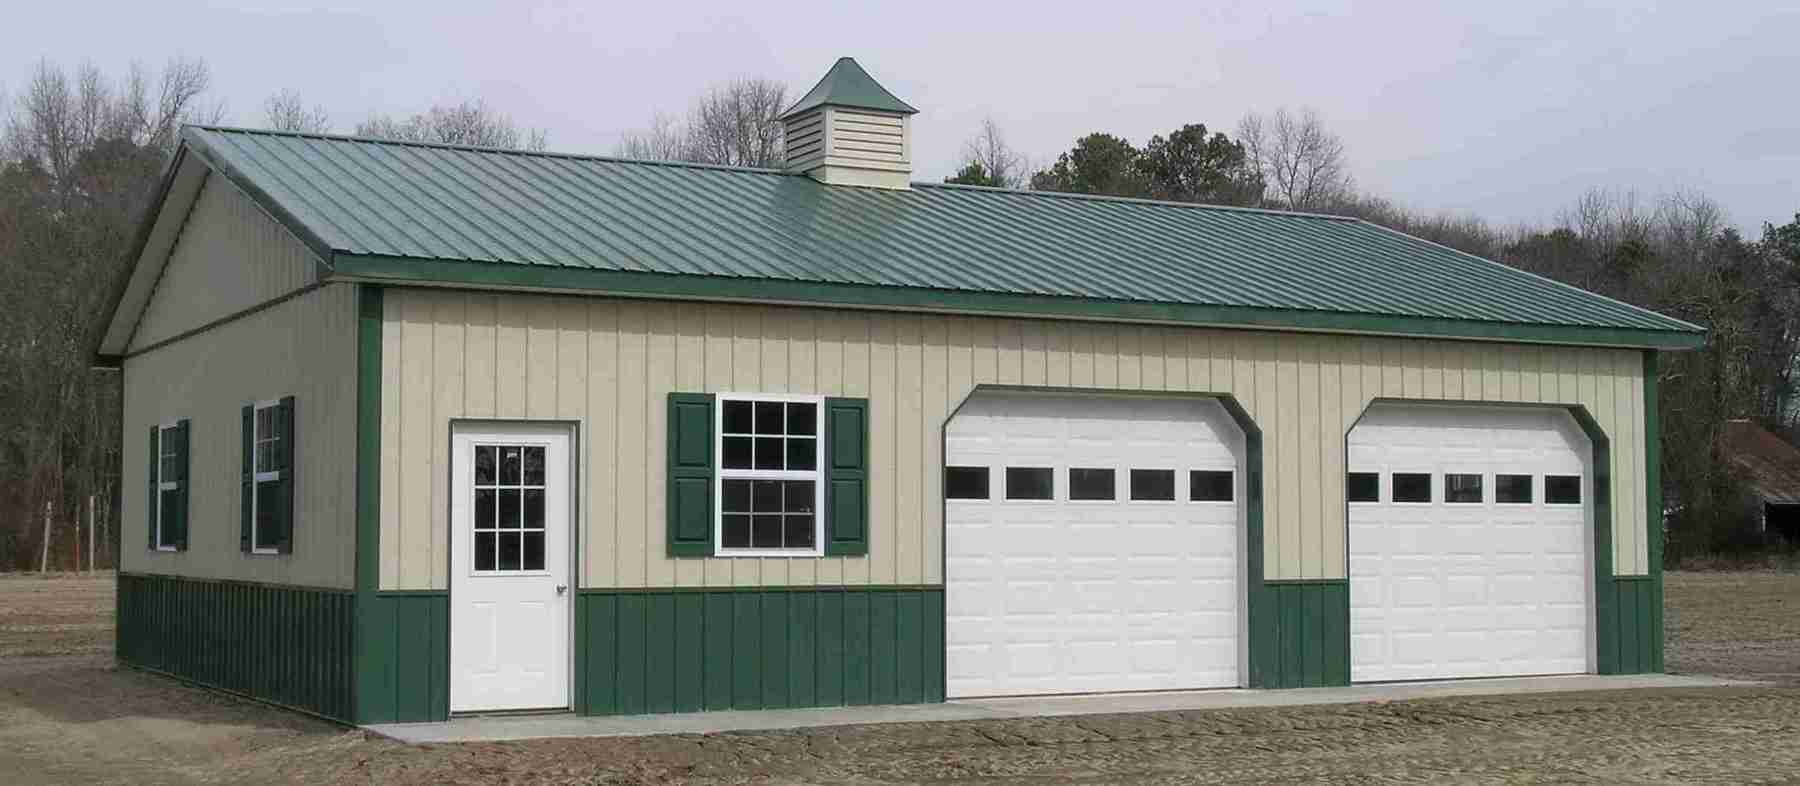 Menards pole barn kit joy studio design gallery best for Home hardware garage packages cost